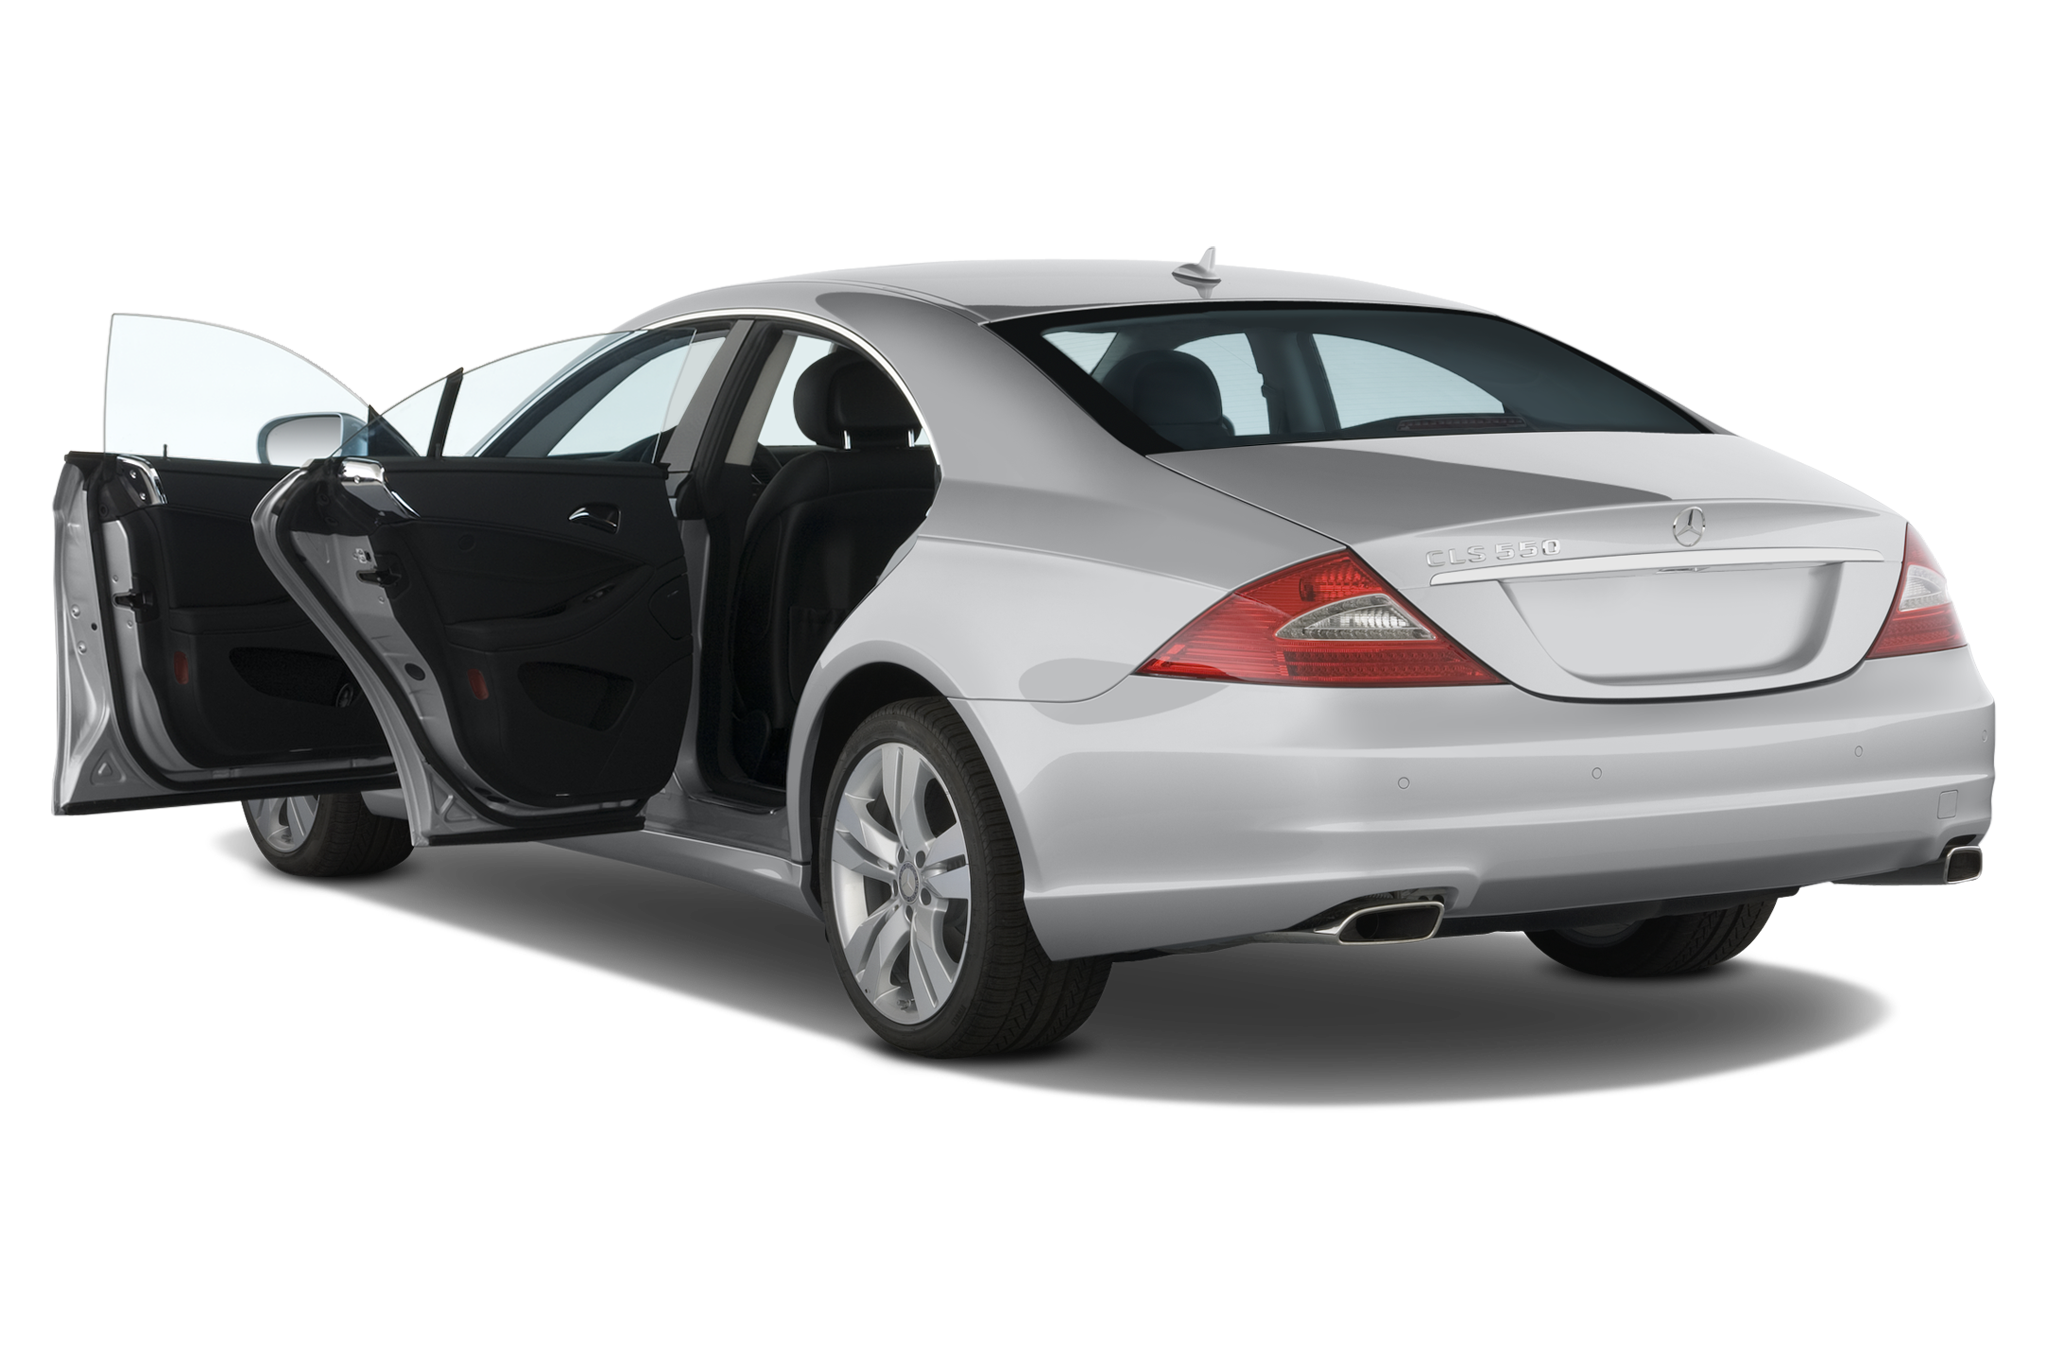 2011 mercedes benz cls caught uncovered for 2011 mercedes benz cls 550